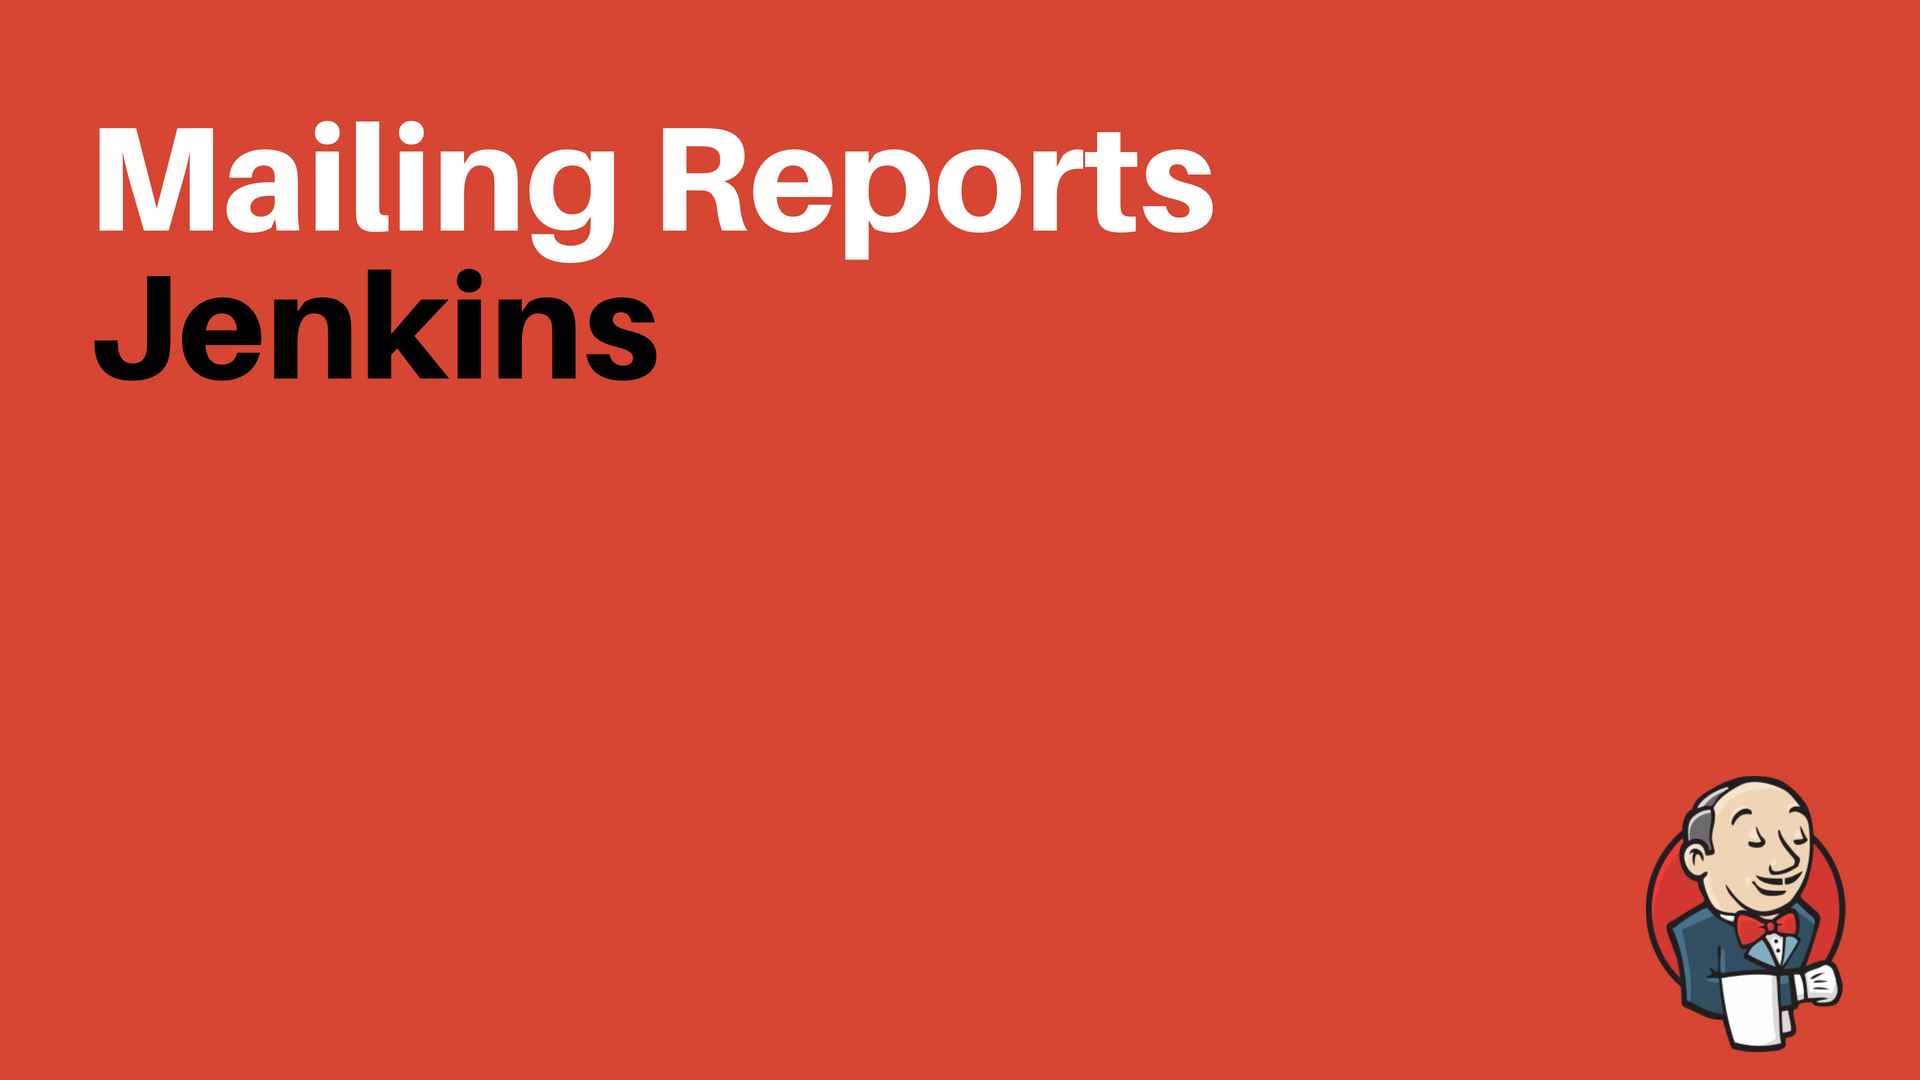 How to Mail Reports Through Jenkins | Configuring Email